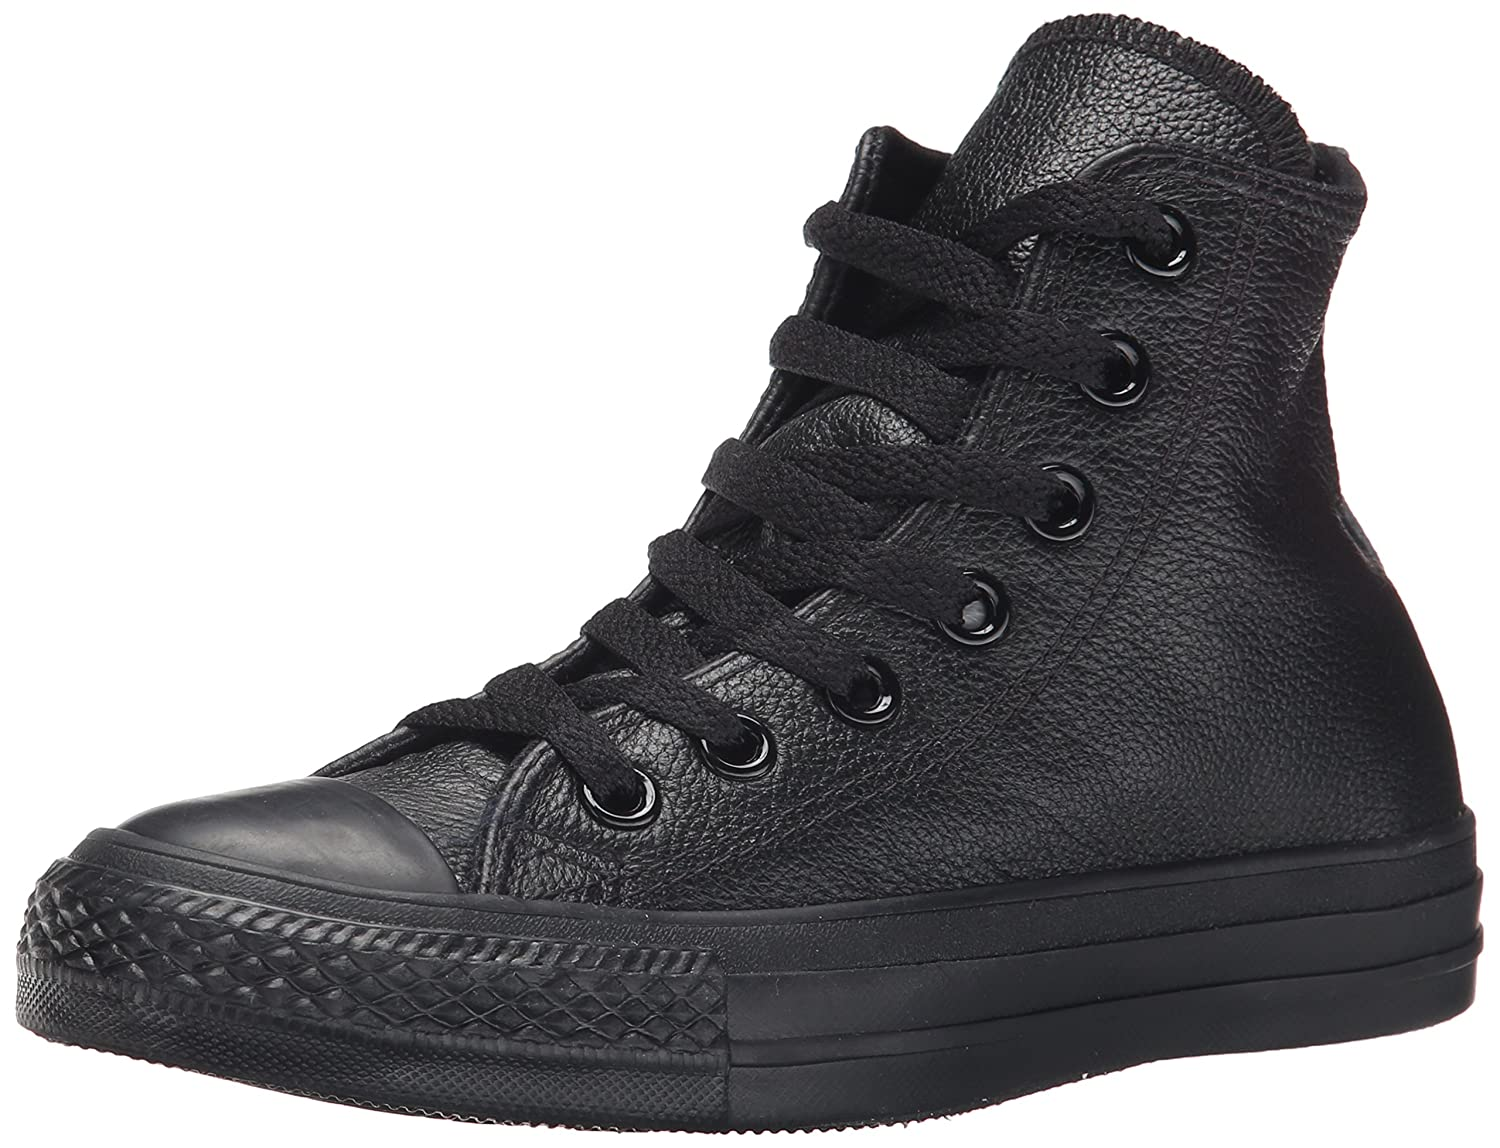 Converse Chuck Taylor All Star Leather High Top Sneaker B0007LIA04 3.5 M US Men / 5.5 M US Women|Black Leather